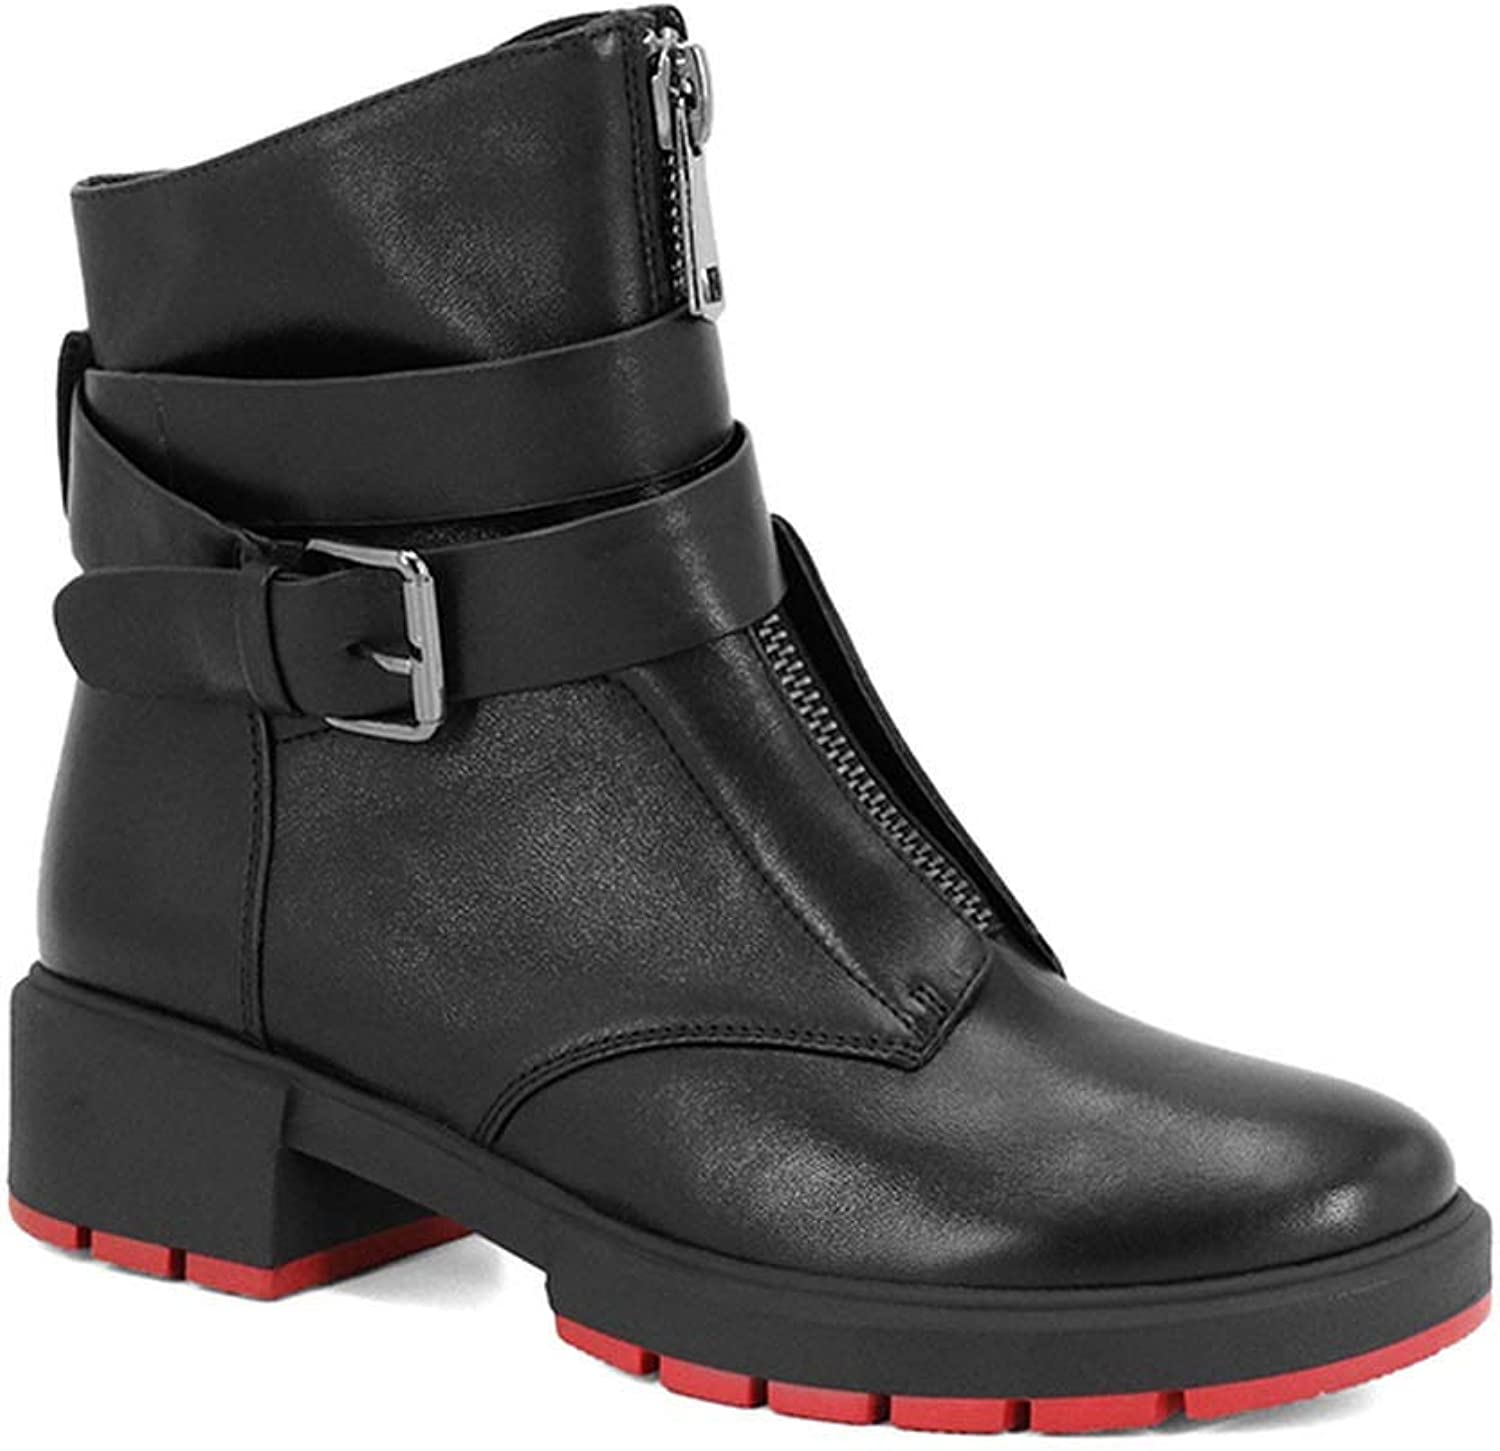 Ankle Boots Casual Thick Round Toe Square Heel Women shoes with Retro Buckle Warm Winter Boots